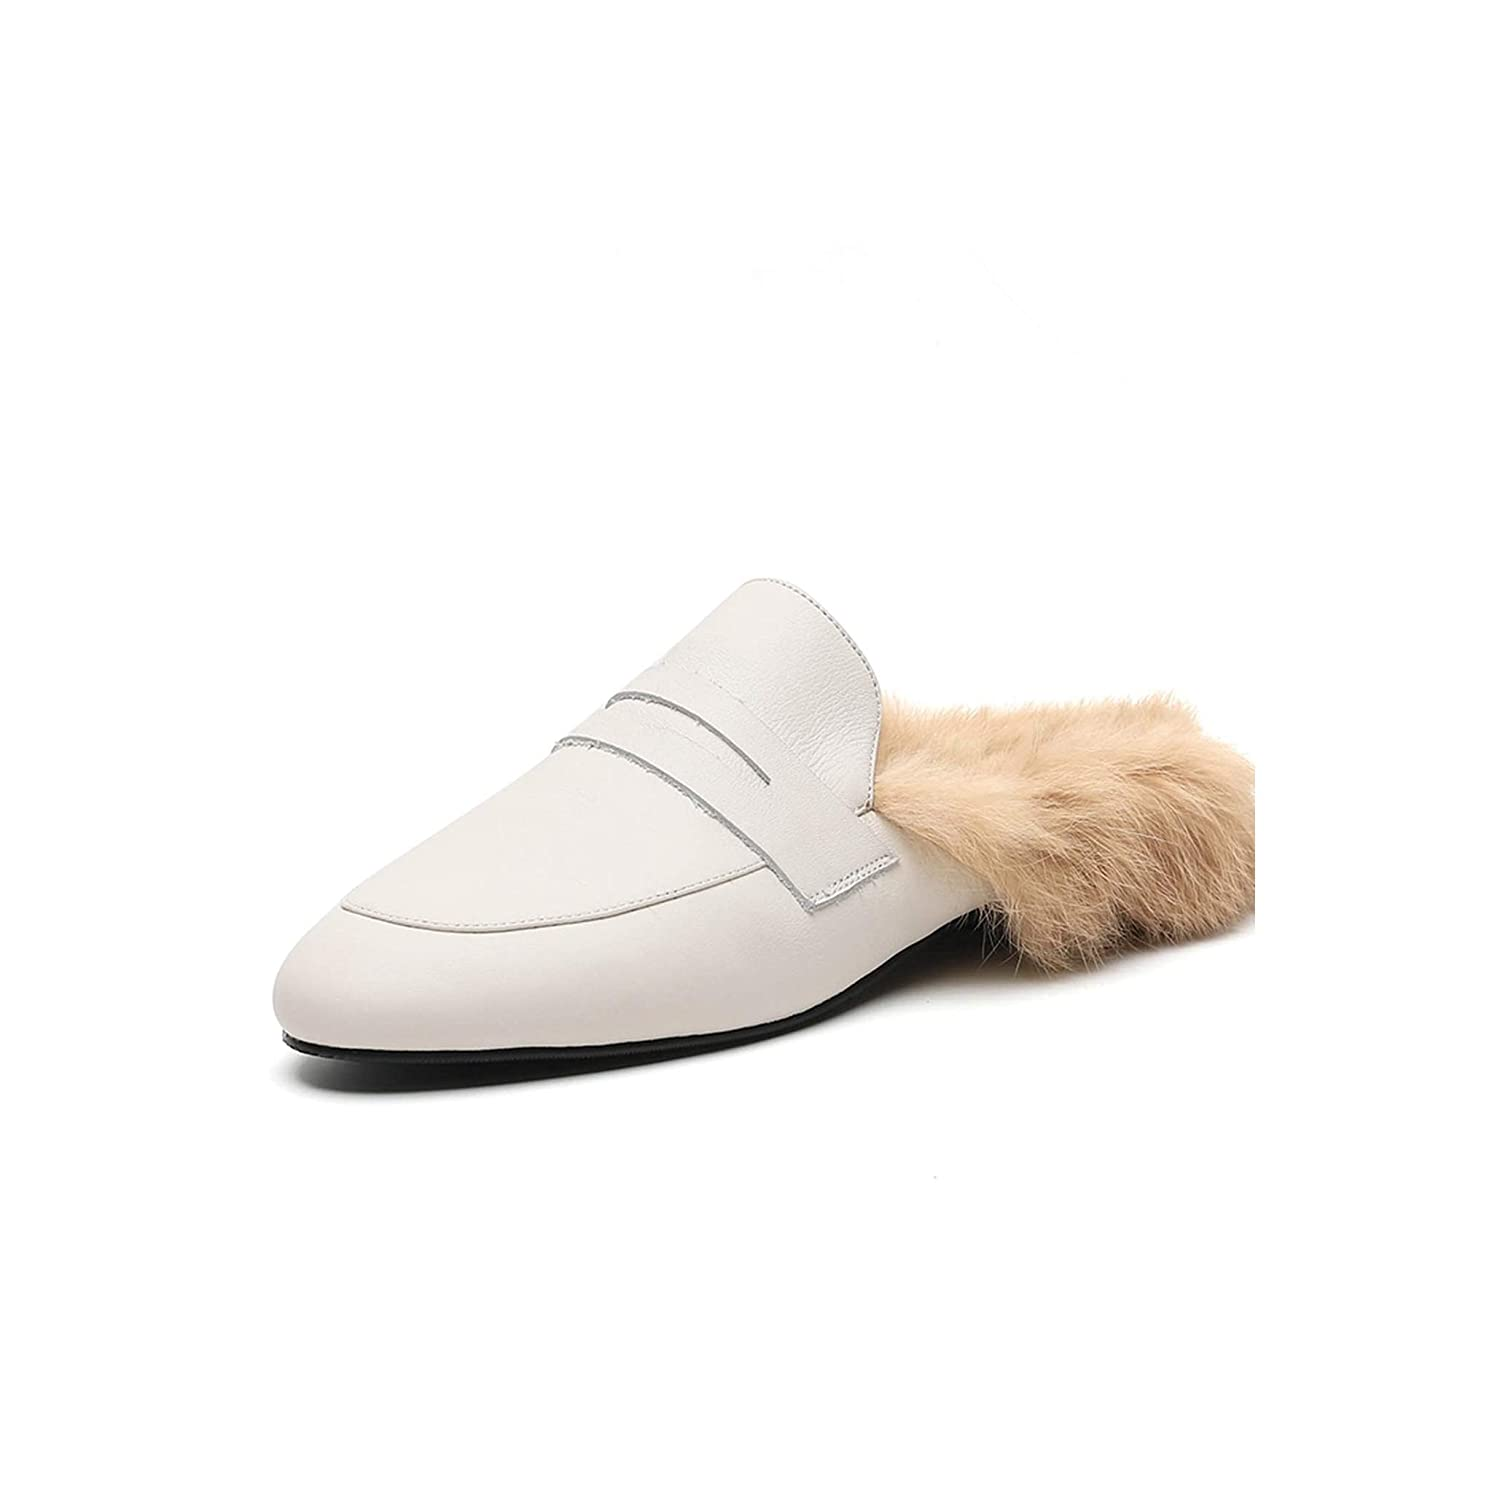 White Spring Popular Women Slippers Round Toe Footwear Casual Warm Female Mules,